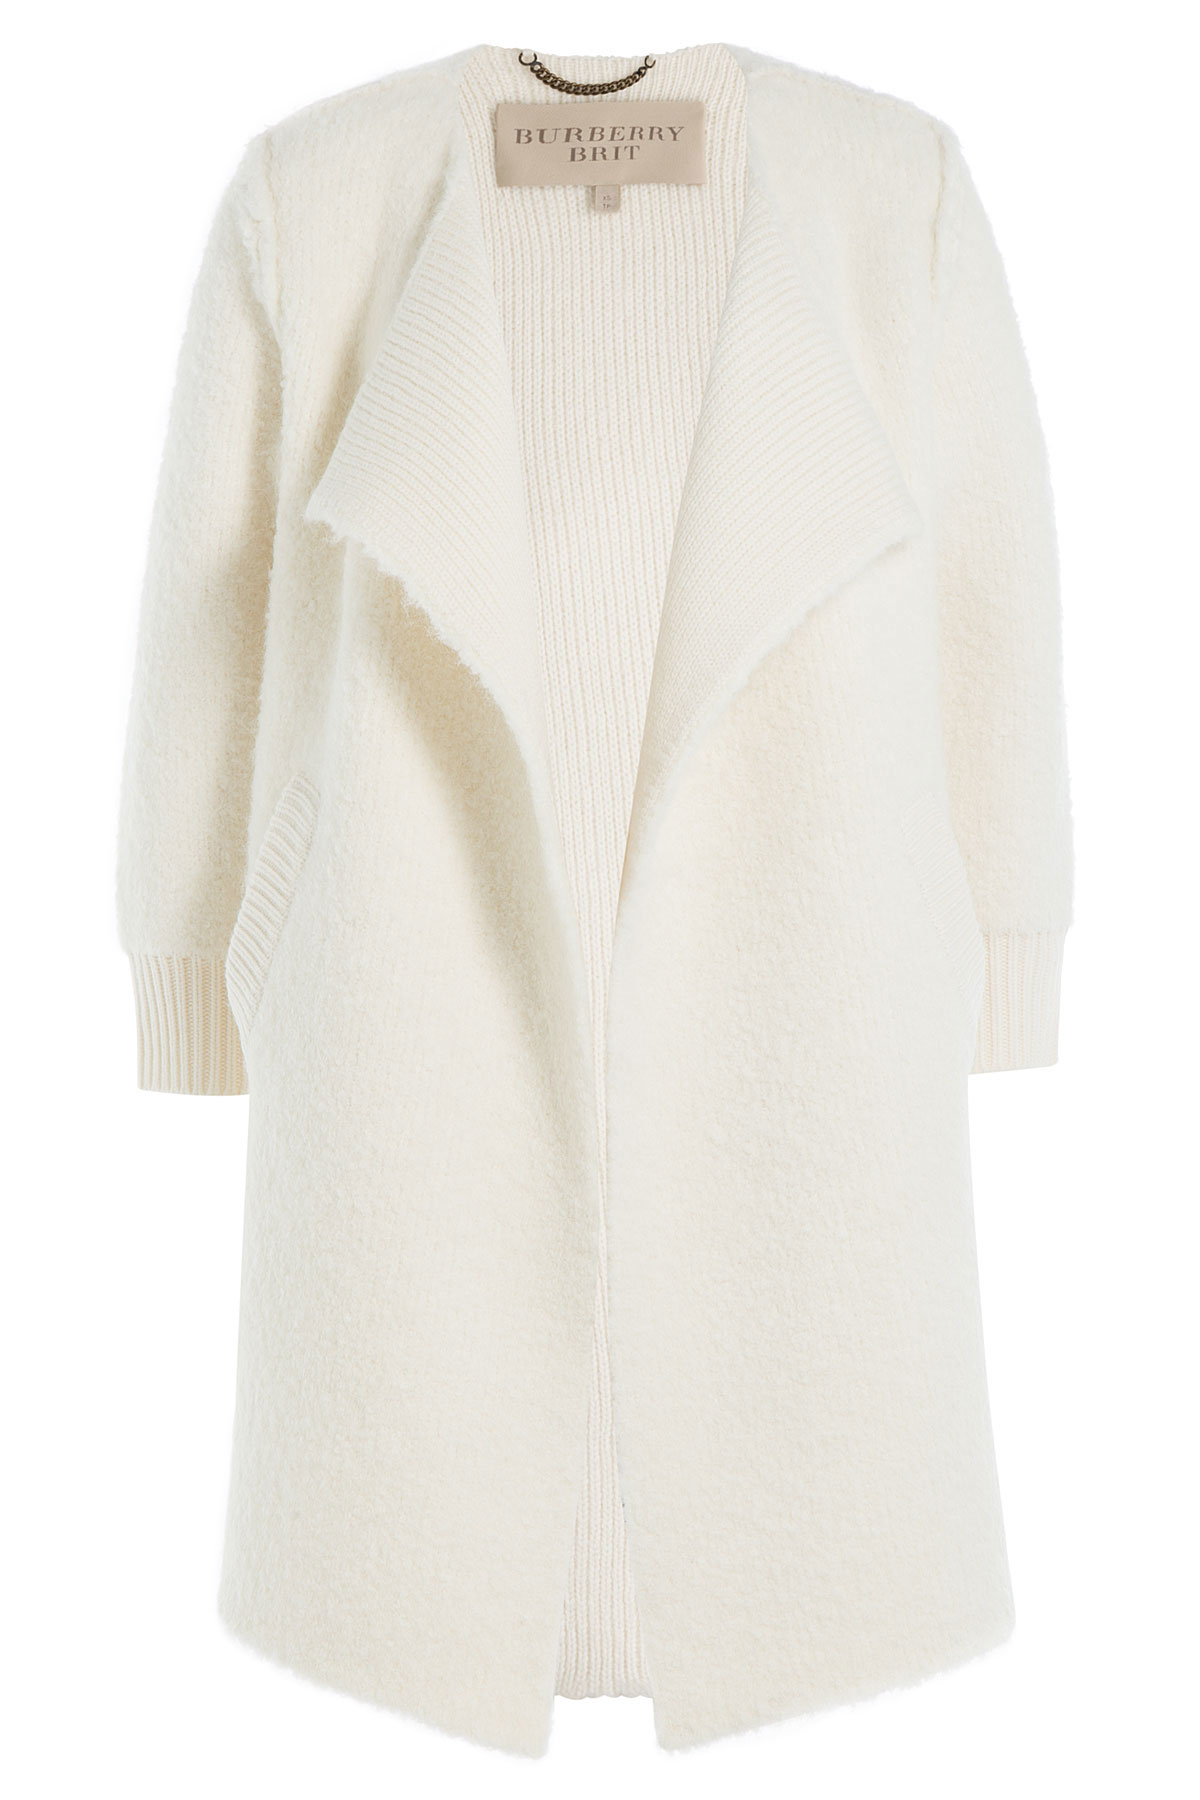 Burberry brit Cape Cardigan With Wool, Alpaca And Cashmere - White ...